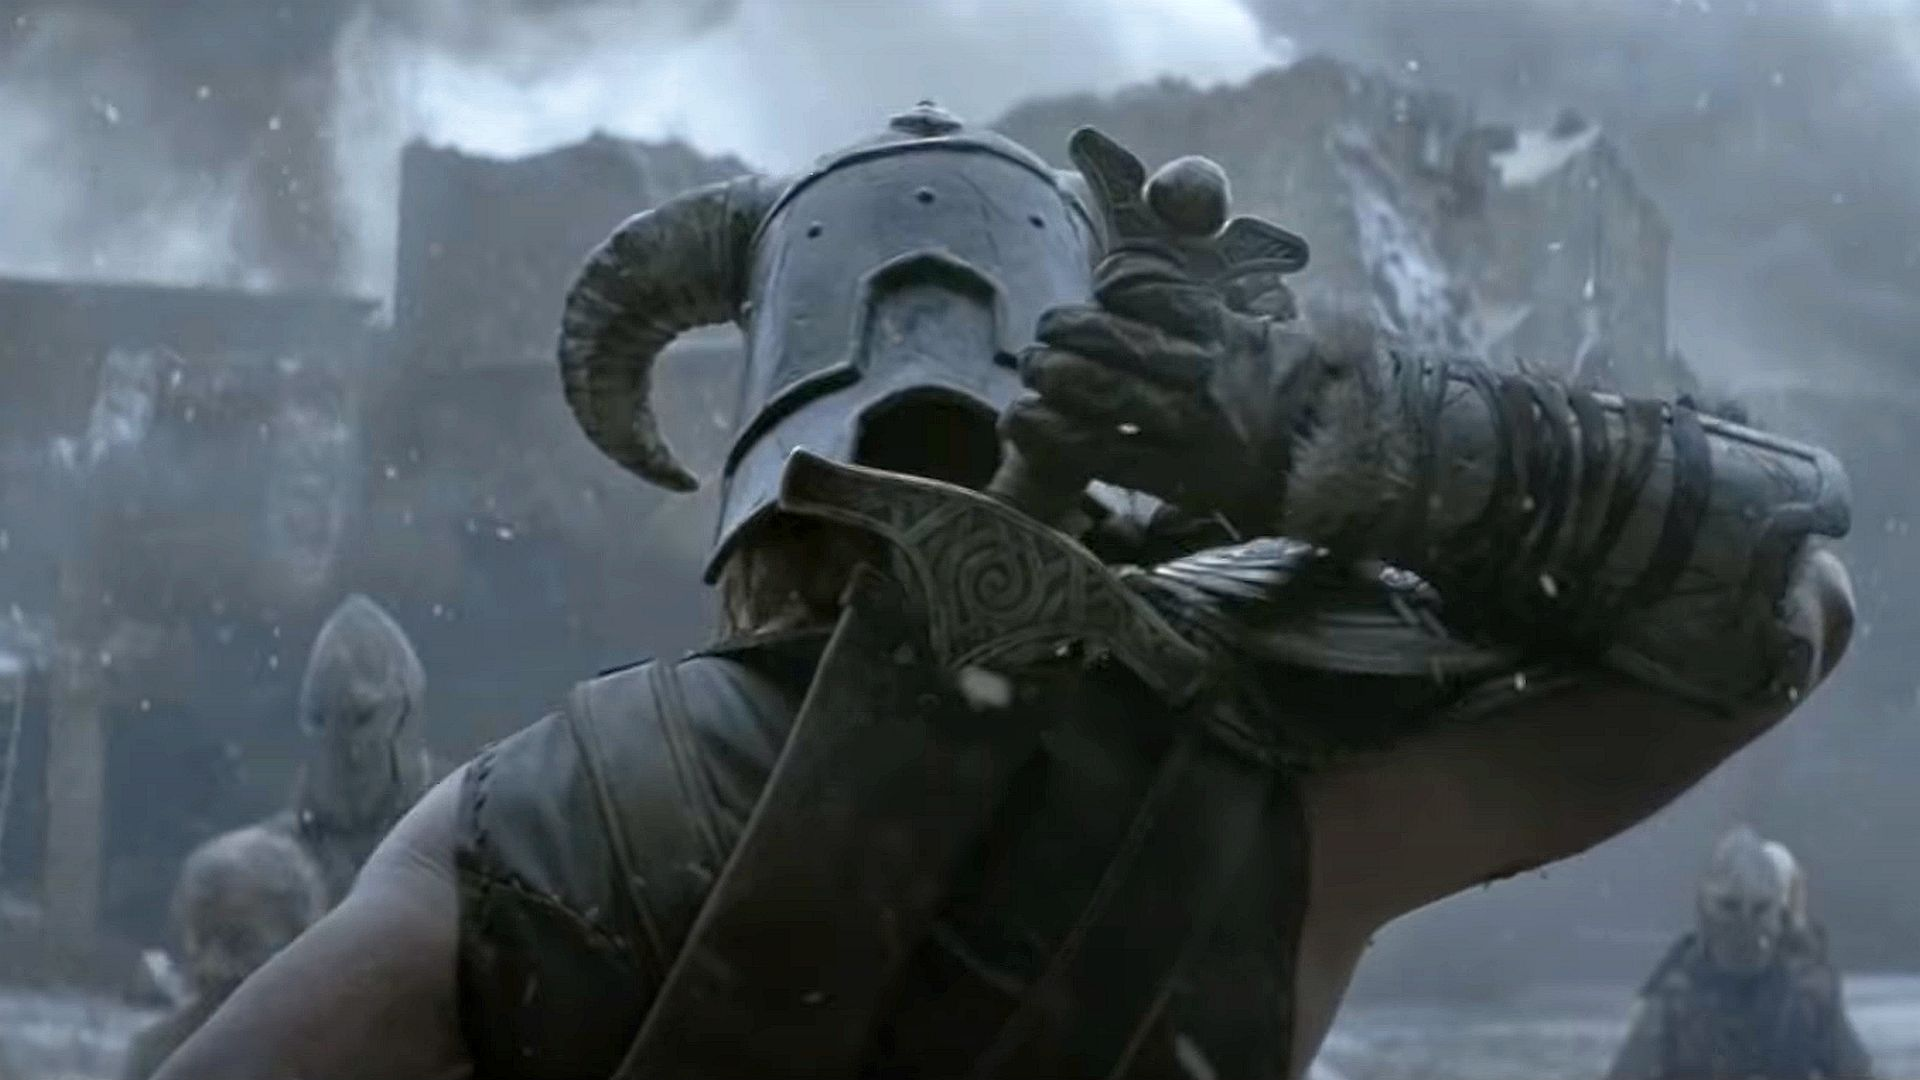 These Skyrim mods are giving weapon animations a Dark Souls overhaul